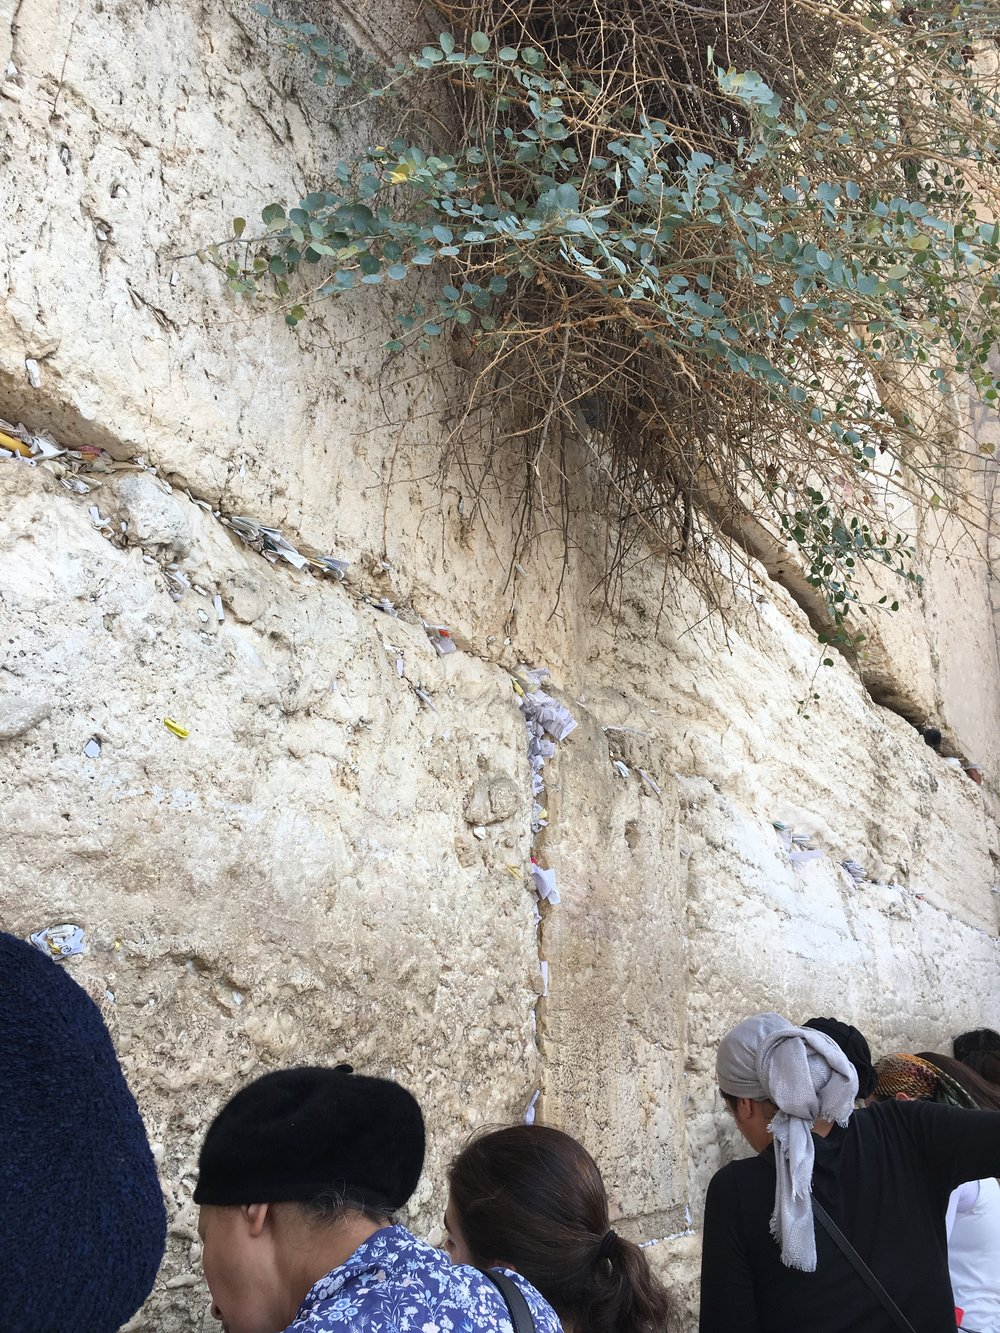 Nishmas @the Kotel - We will travel from the center of the earth (the Kotel)  to the center of our hearts (our relationship with H-shem)